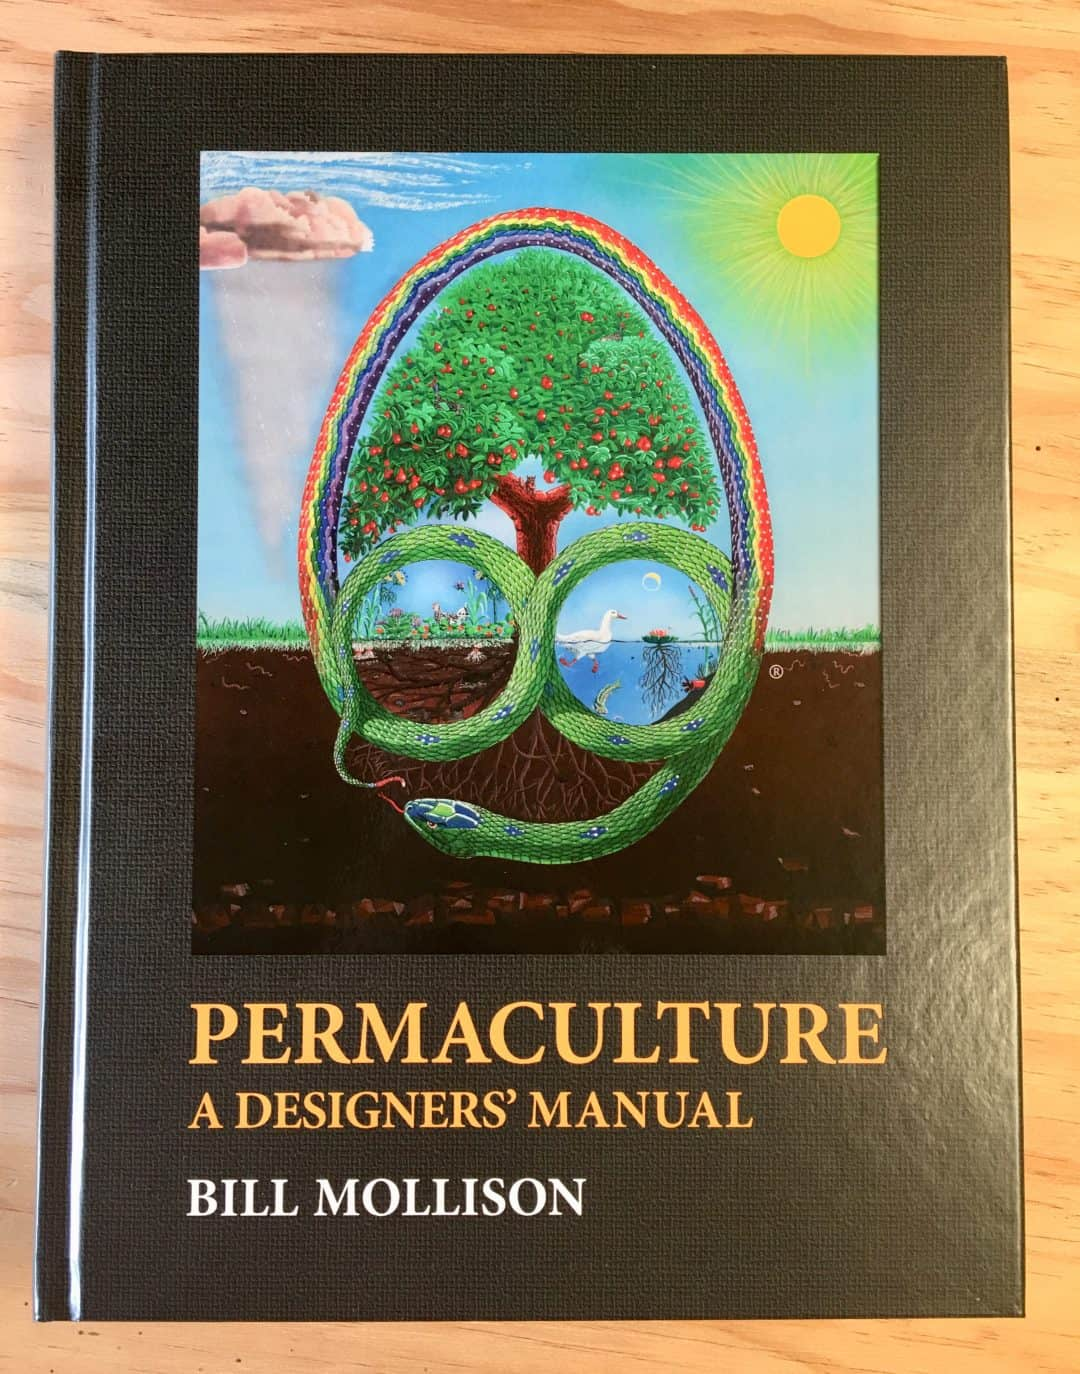 permaculture a designer s manual by bill mollison pip magazine rh pipmagazine com au bill mollison permaculture a designers manual free bill mollison permaculture a designers manual pdf free